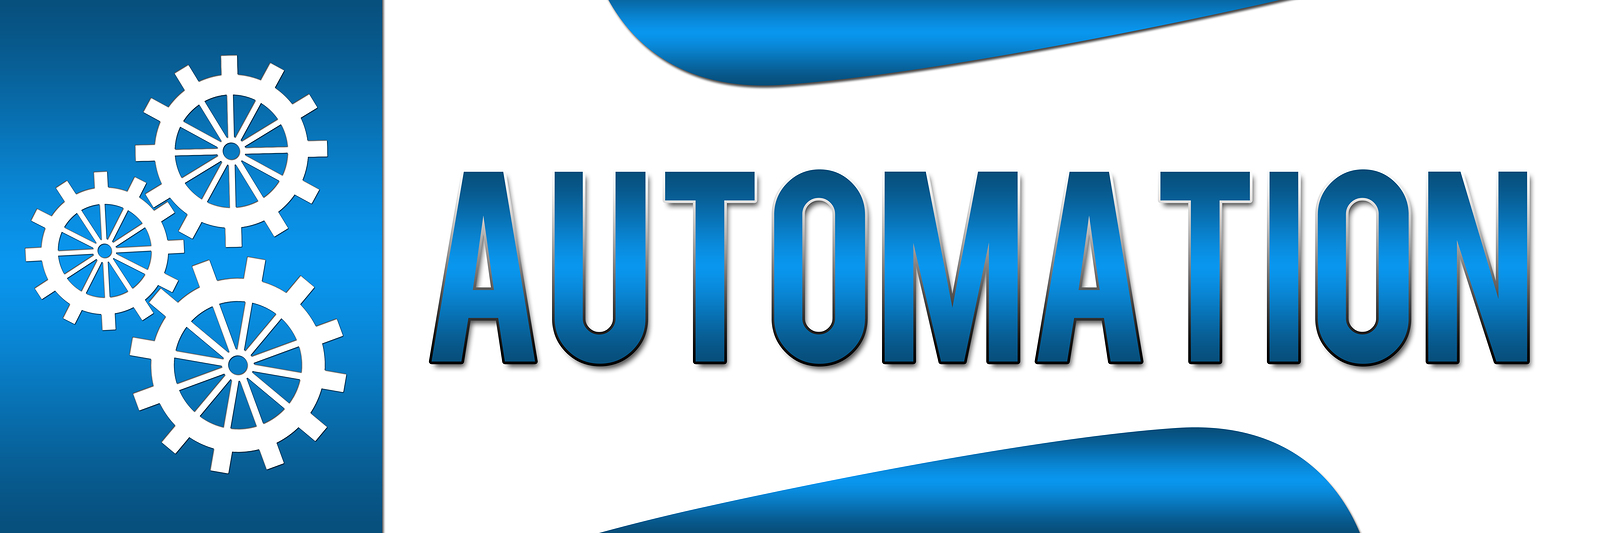 marketing automation definition | GetUWired | GetUWired